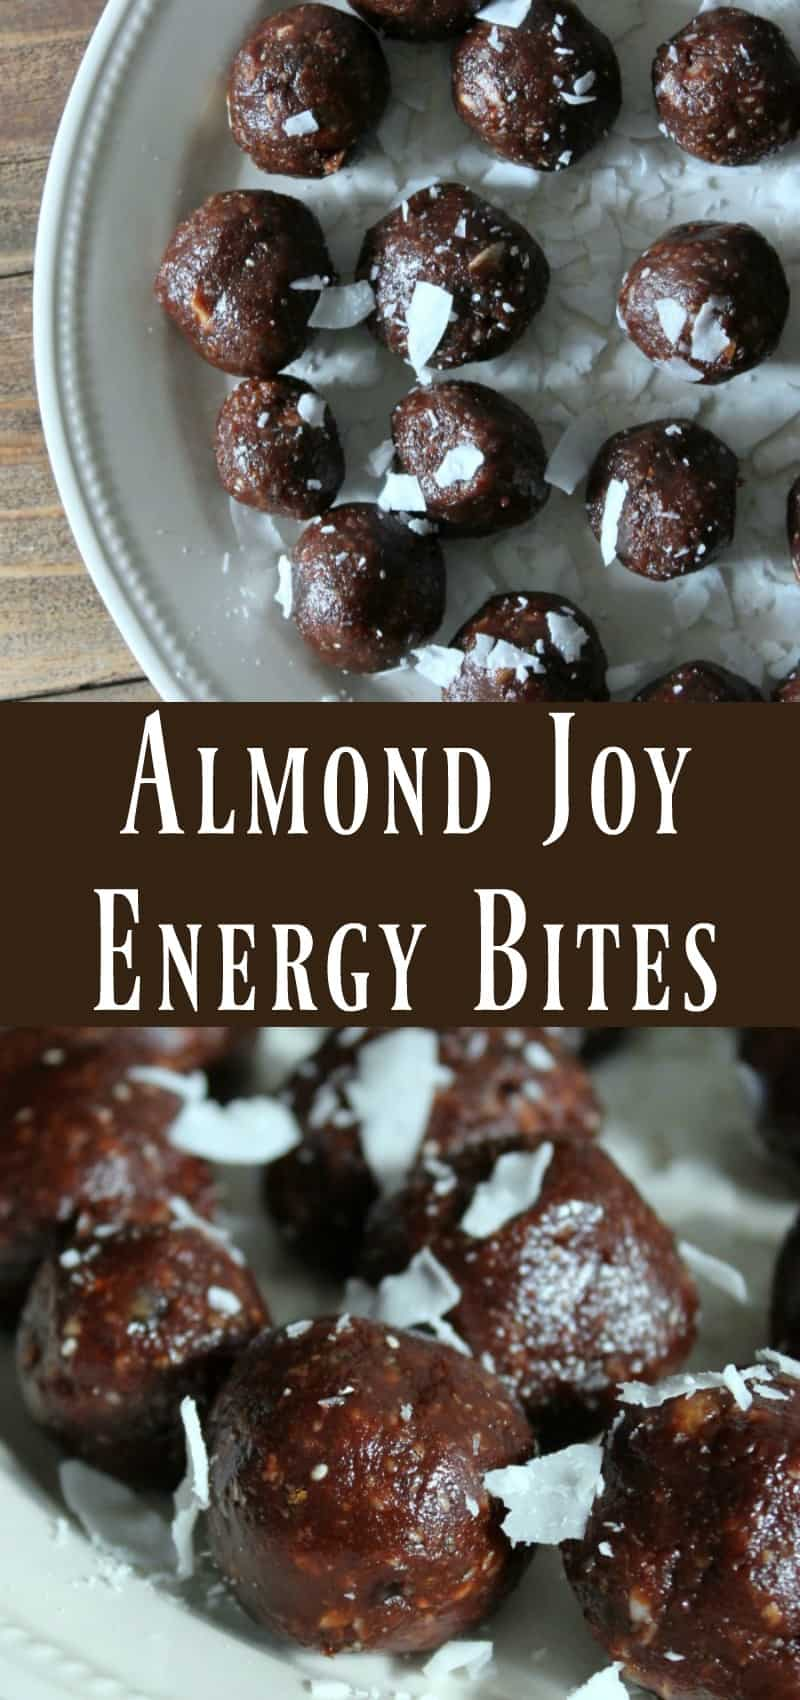 Medjool Dates processed together with chocolate, almonds, and coconut to create this delicious almond joy inspired energy bite.